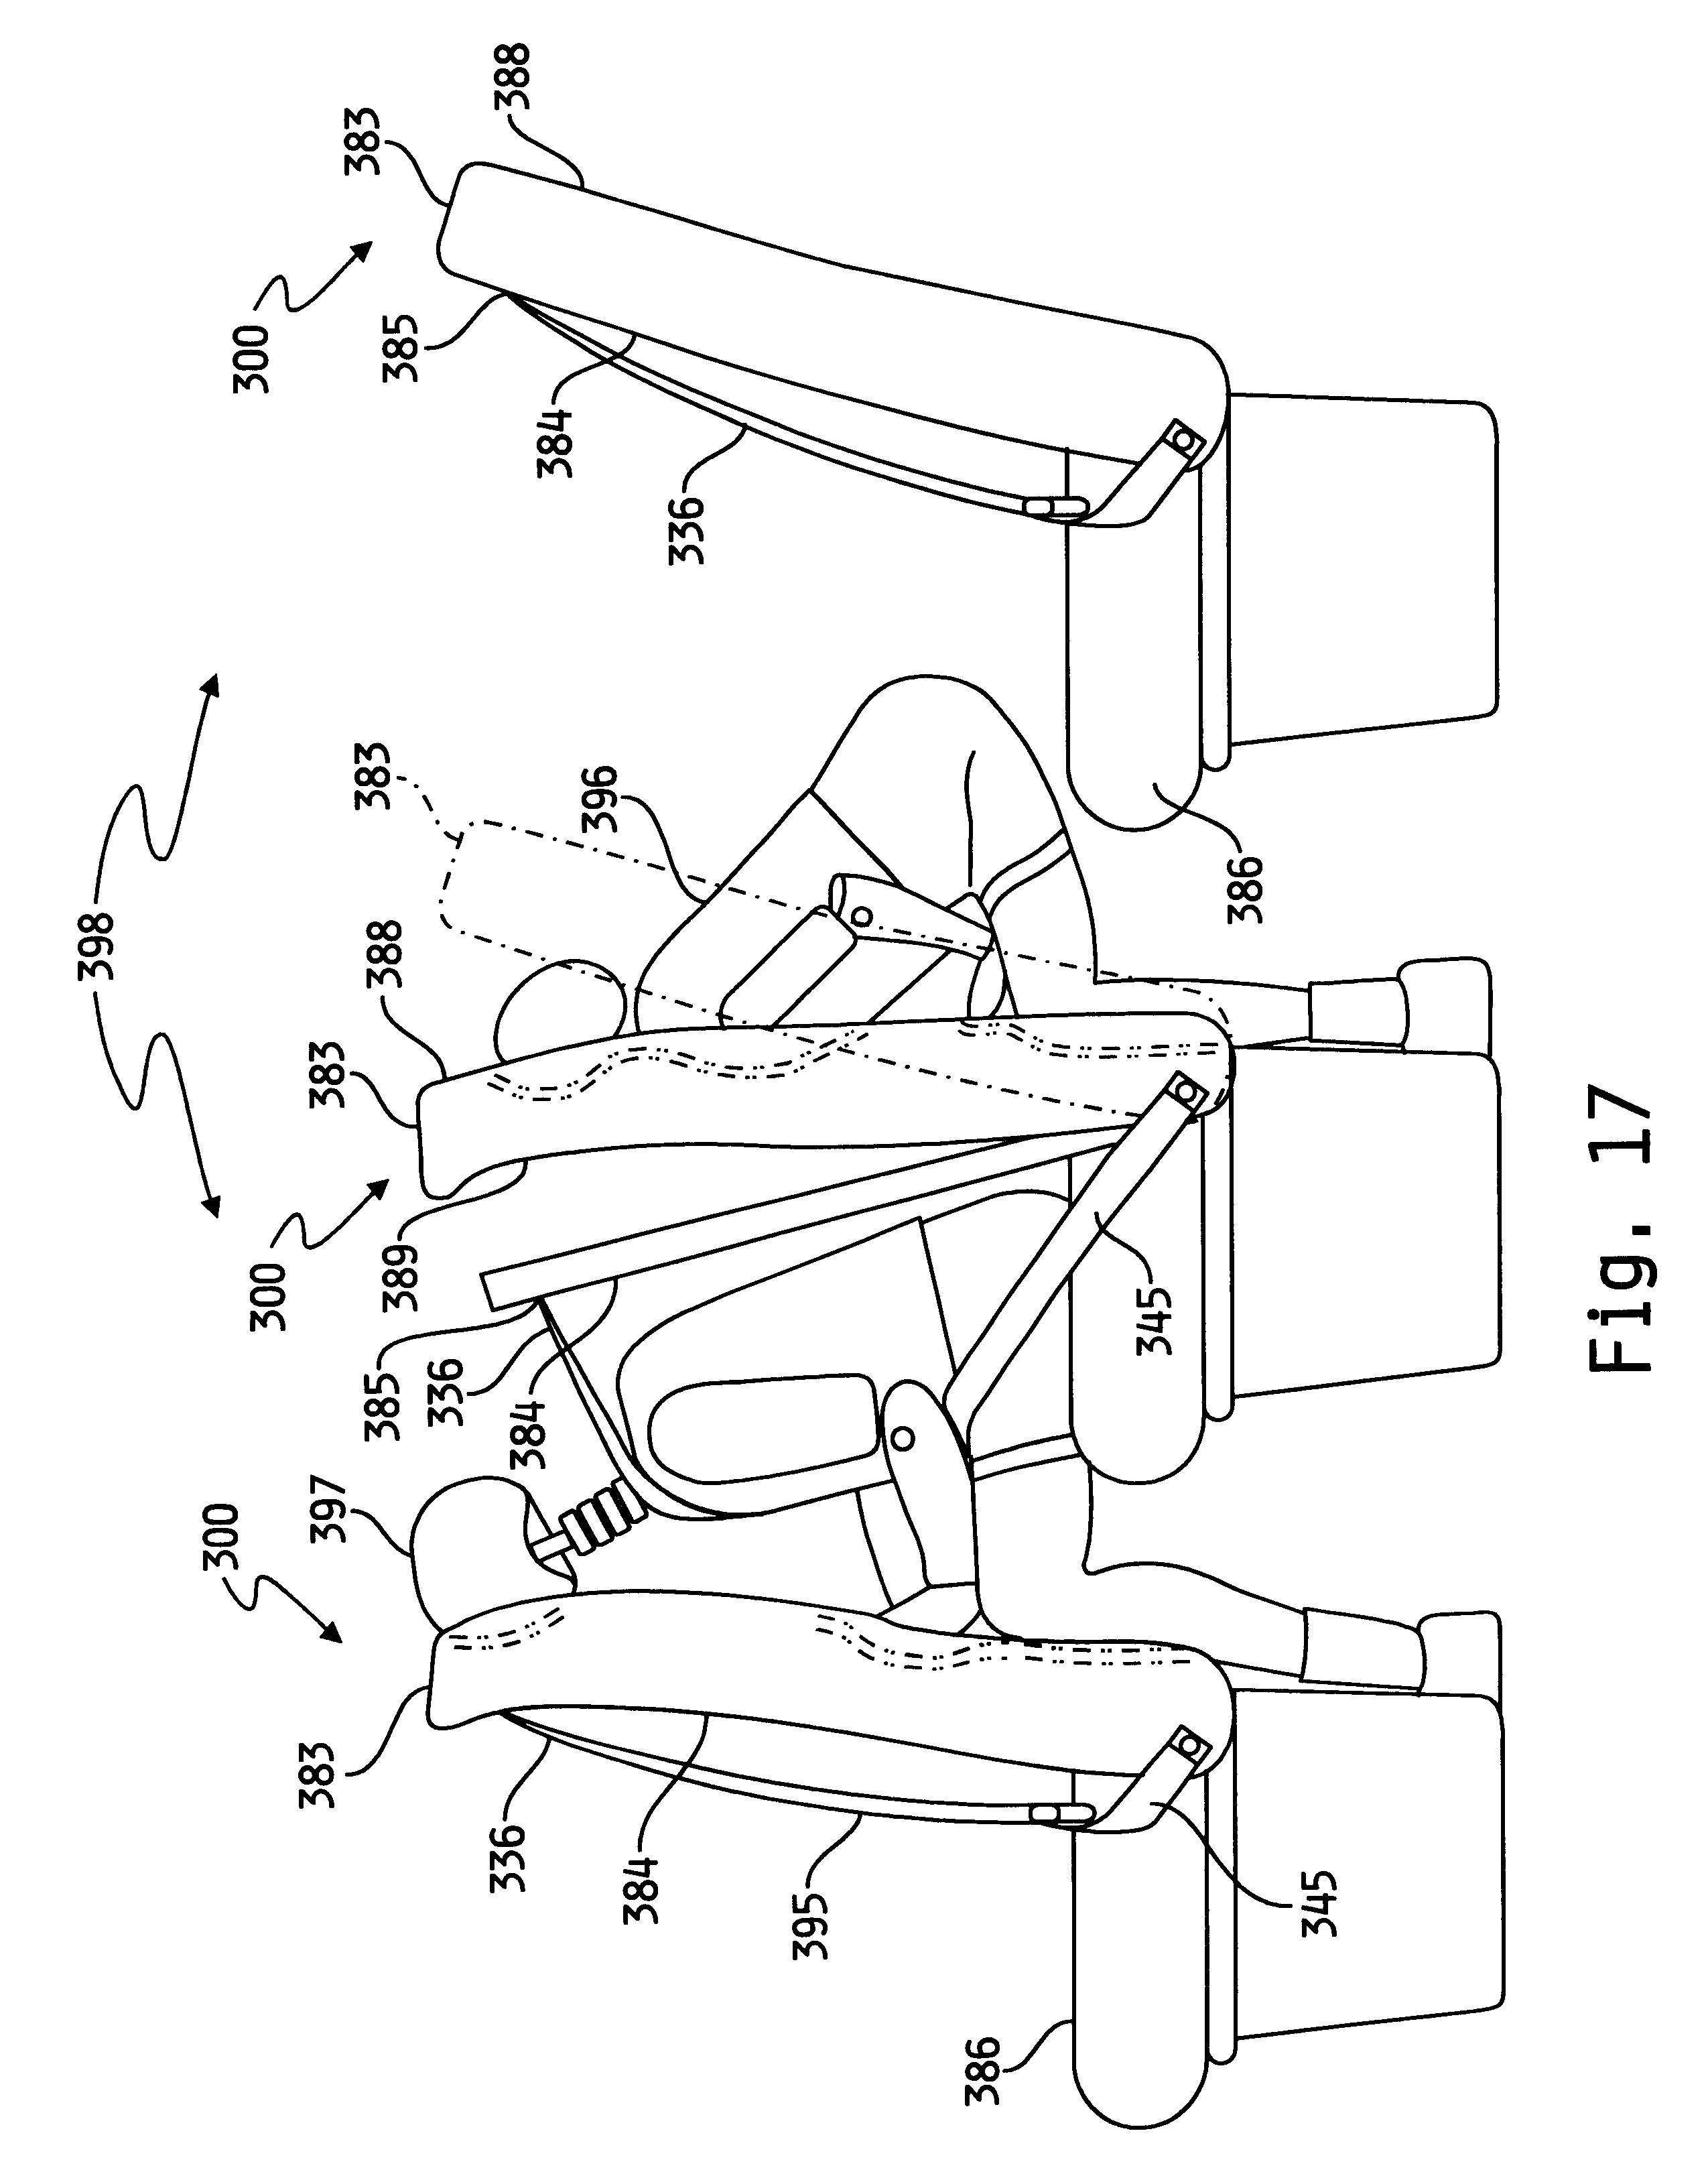 Patent Us6485098 Restraint System For A School Bus Seat Google Keyboard Matrix Wiring Diagram Drawing